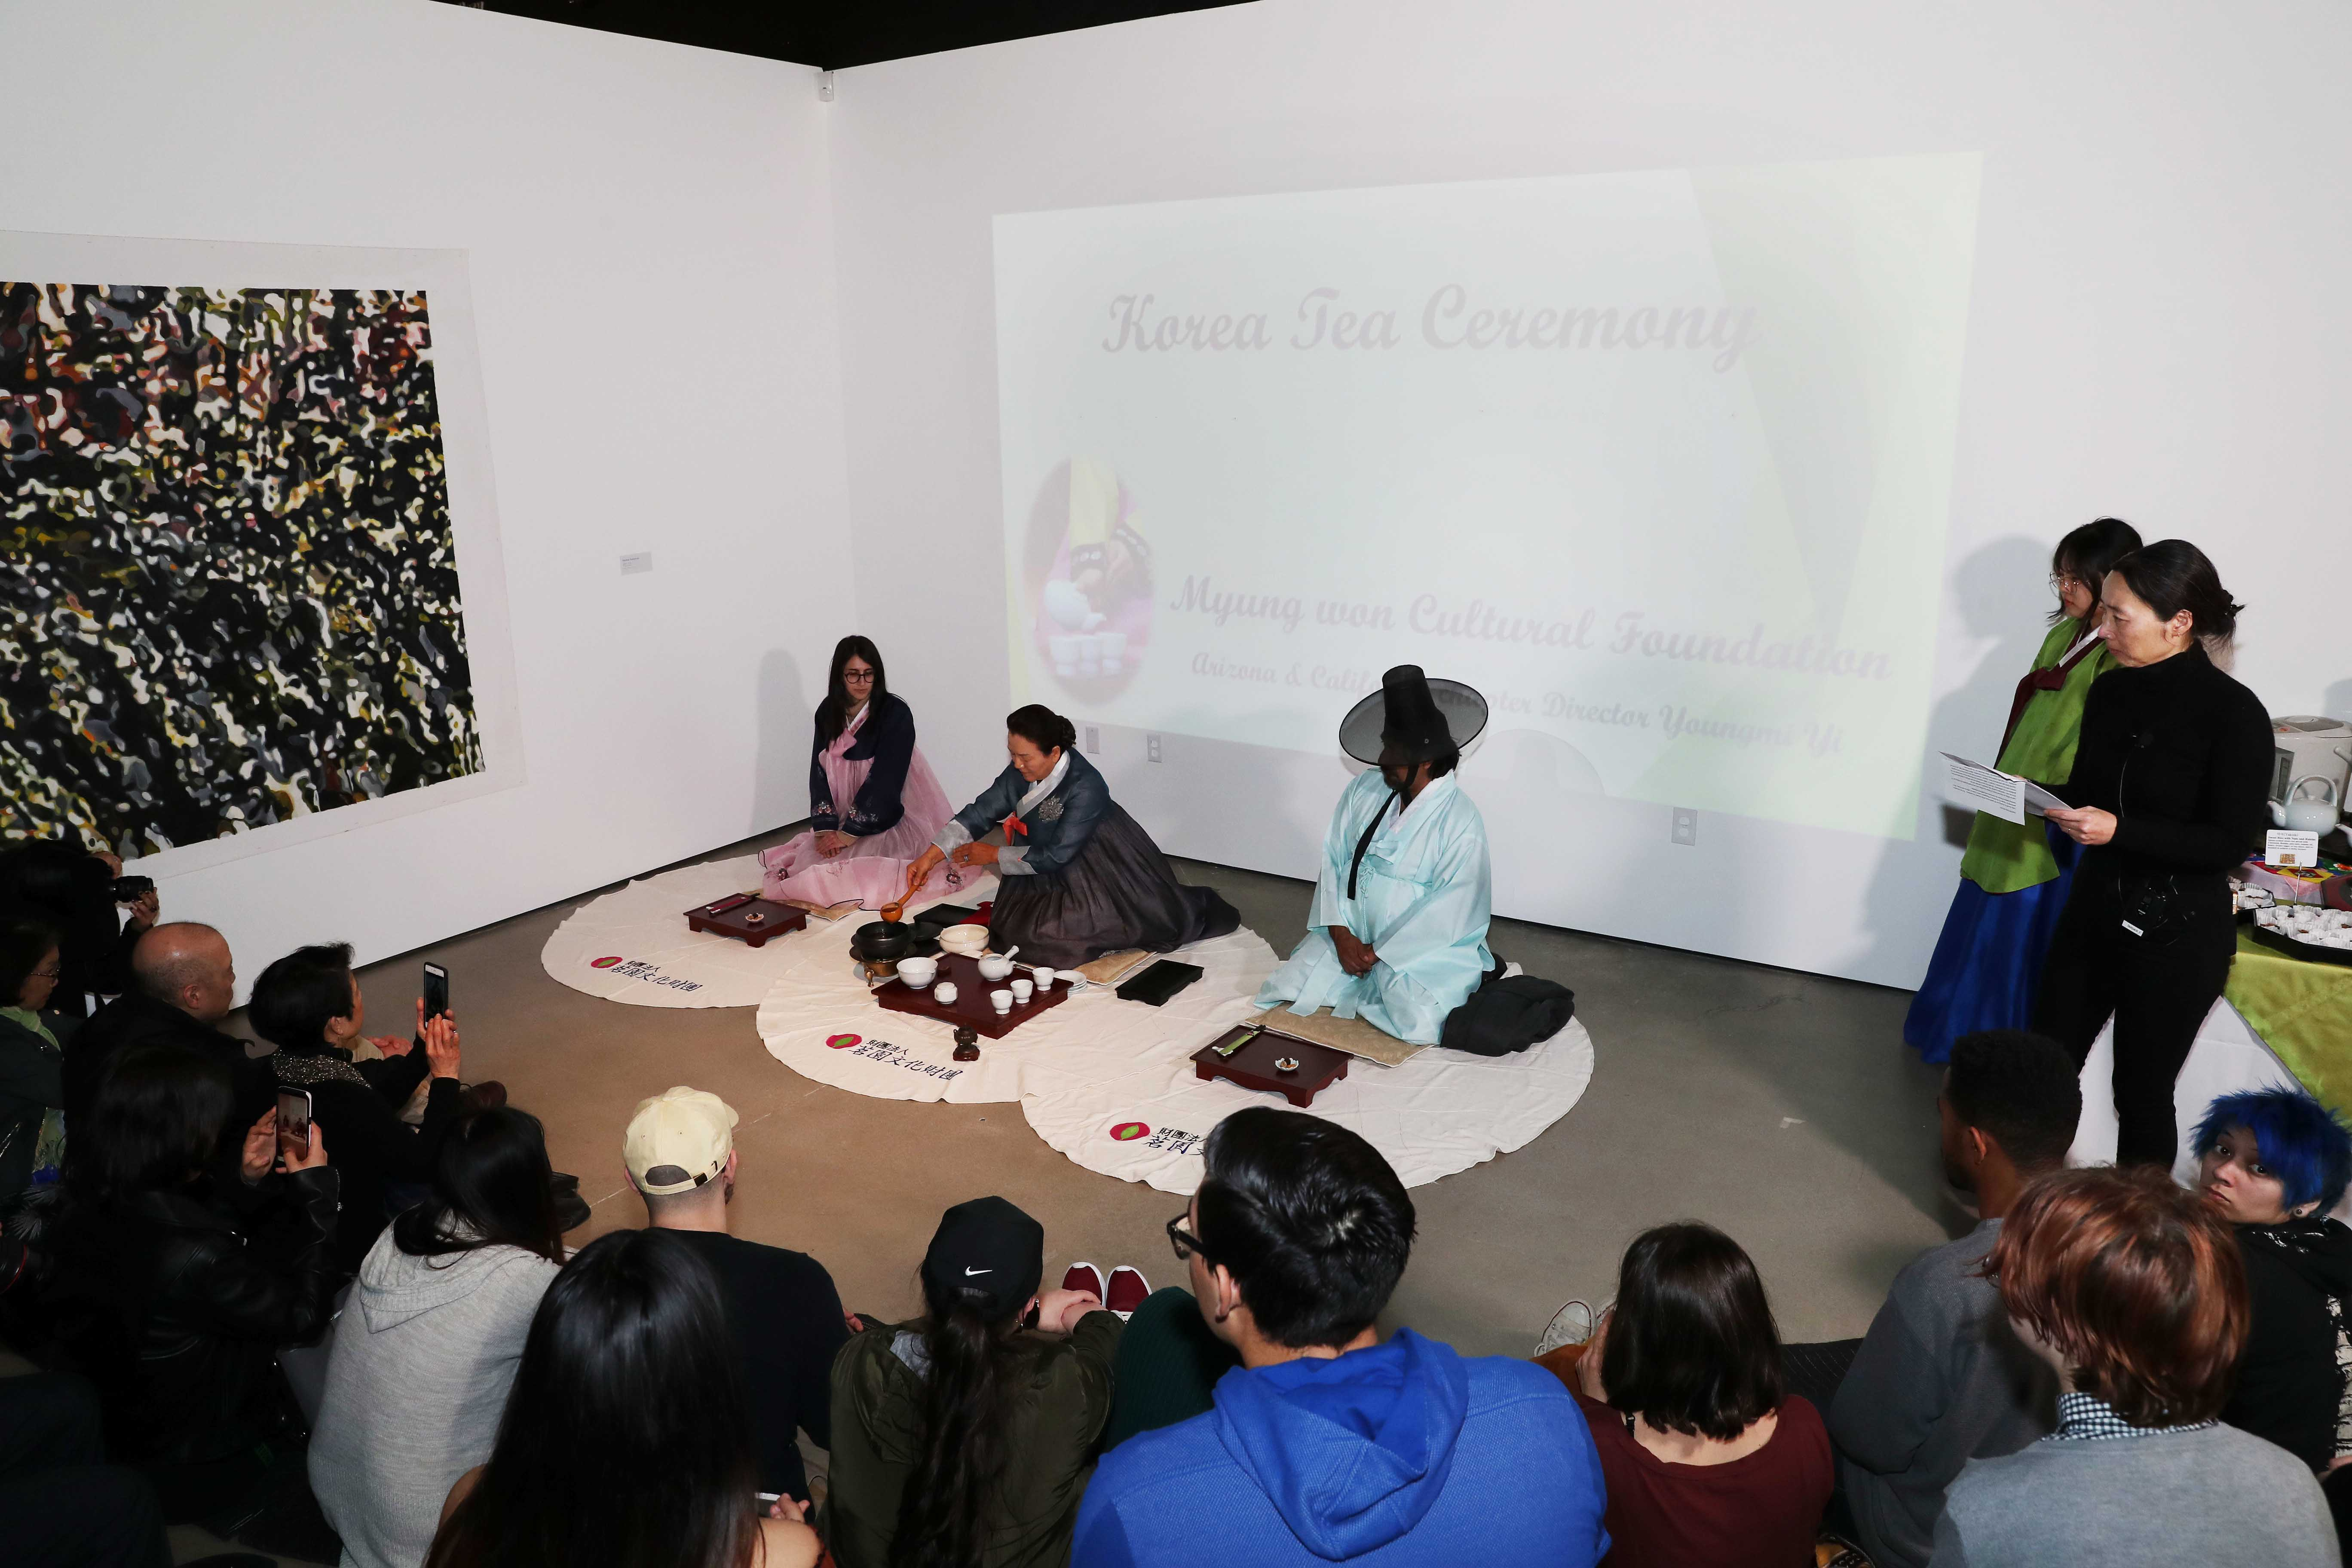 Attendees were able to sample tea that was prepared by Yi. Before drinking the tea, they were told to check the color, smell the aroma, and then drink the tea slowly to fully appreciate the taste.